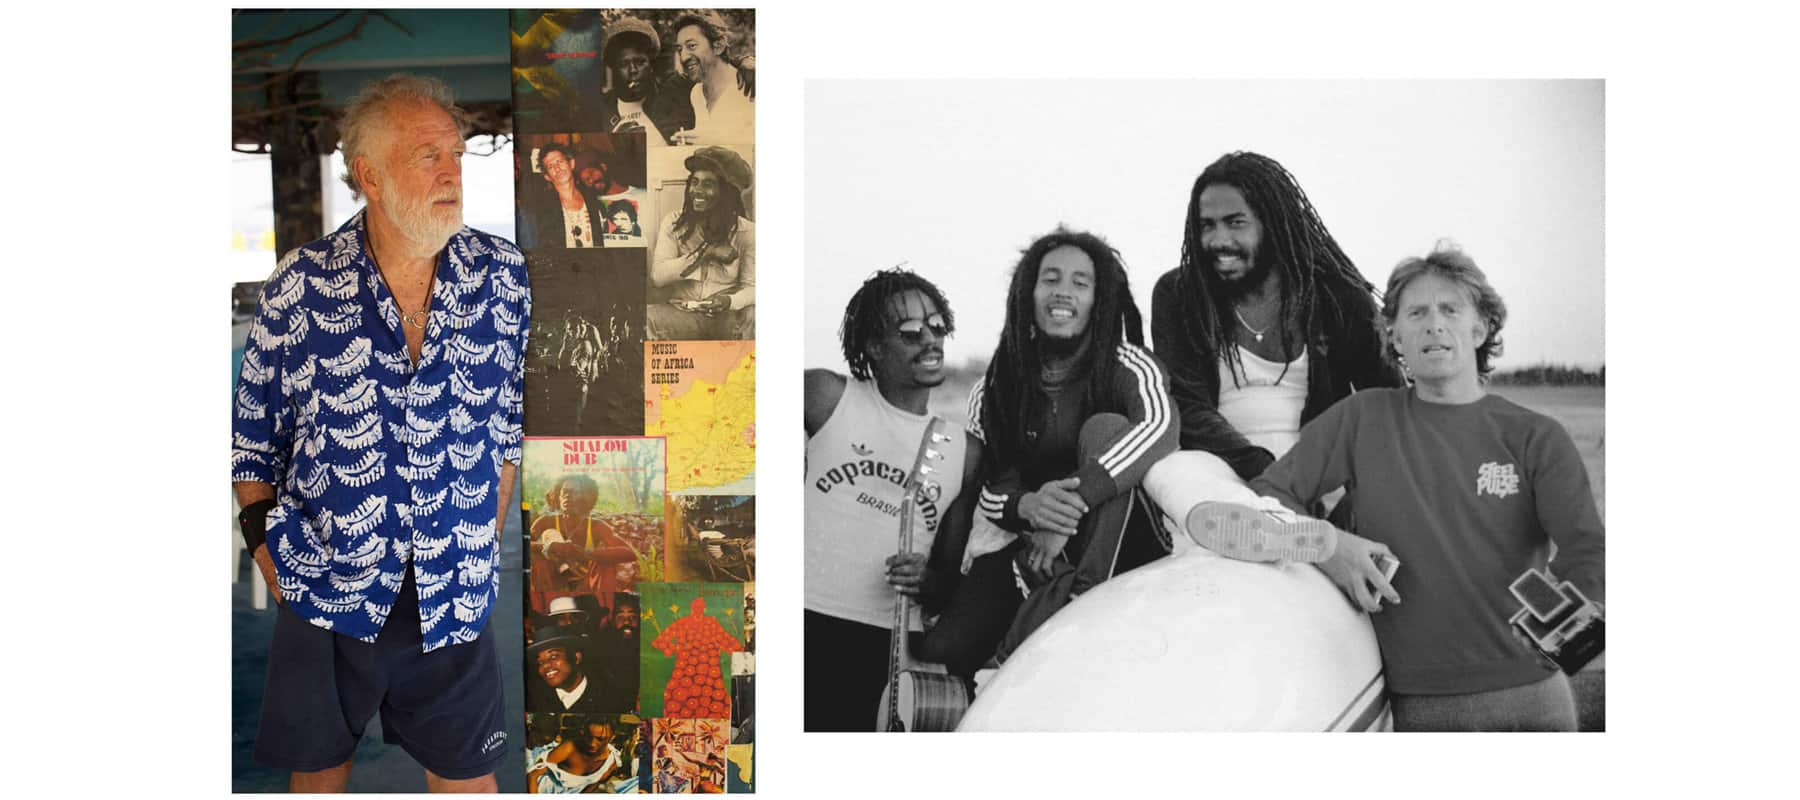 Gauche : photo en couleur de Chris Blackwell à côté d'un mur recouvert de photos de Bob Marley. Droite : photo en noir et blanc de Junior Marvin, Bob Marley, Jacob Miller et Chris Blackwell au Brésil en 1980.